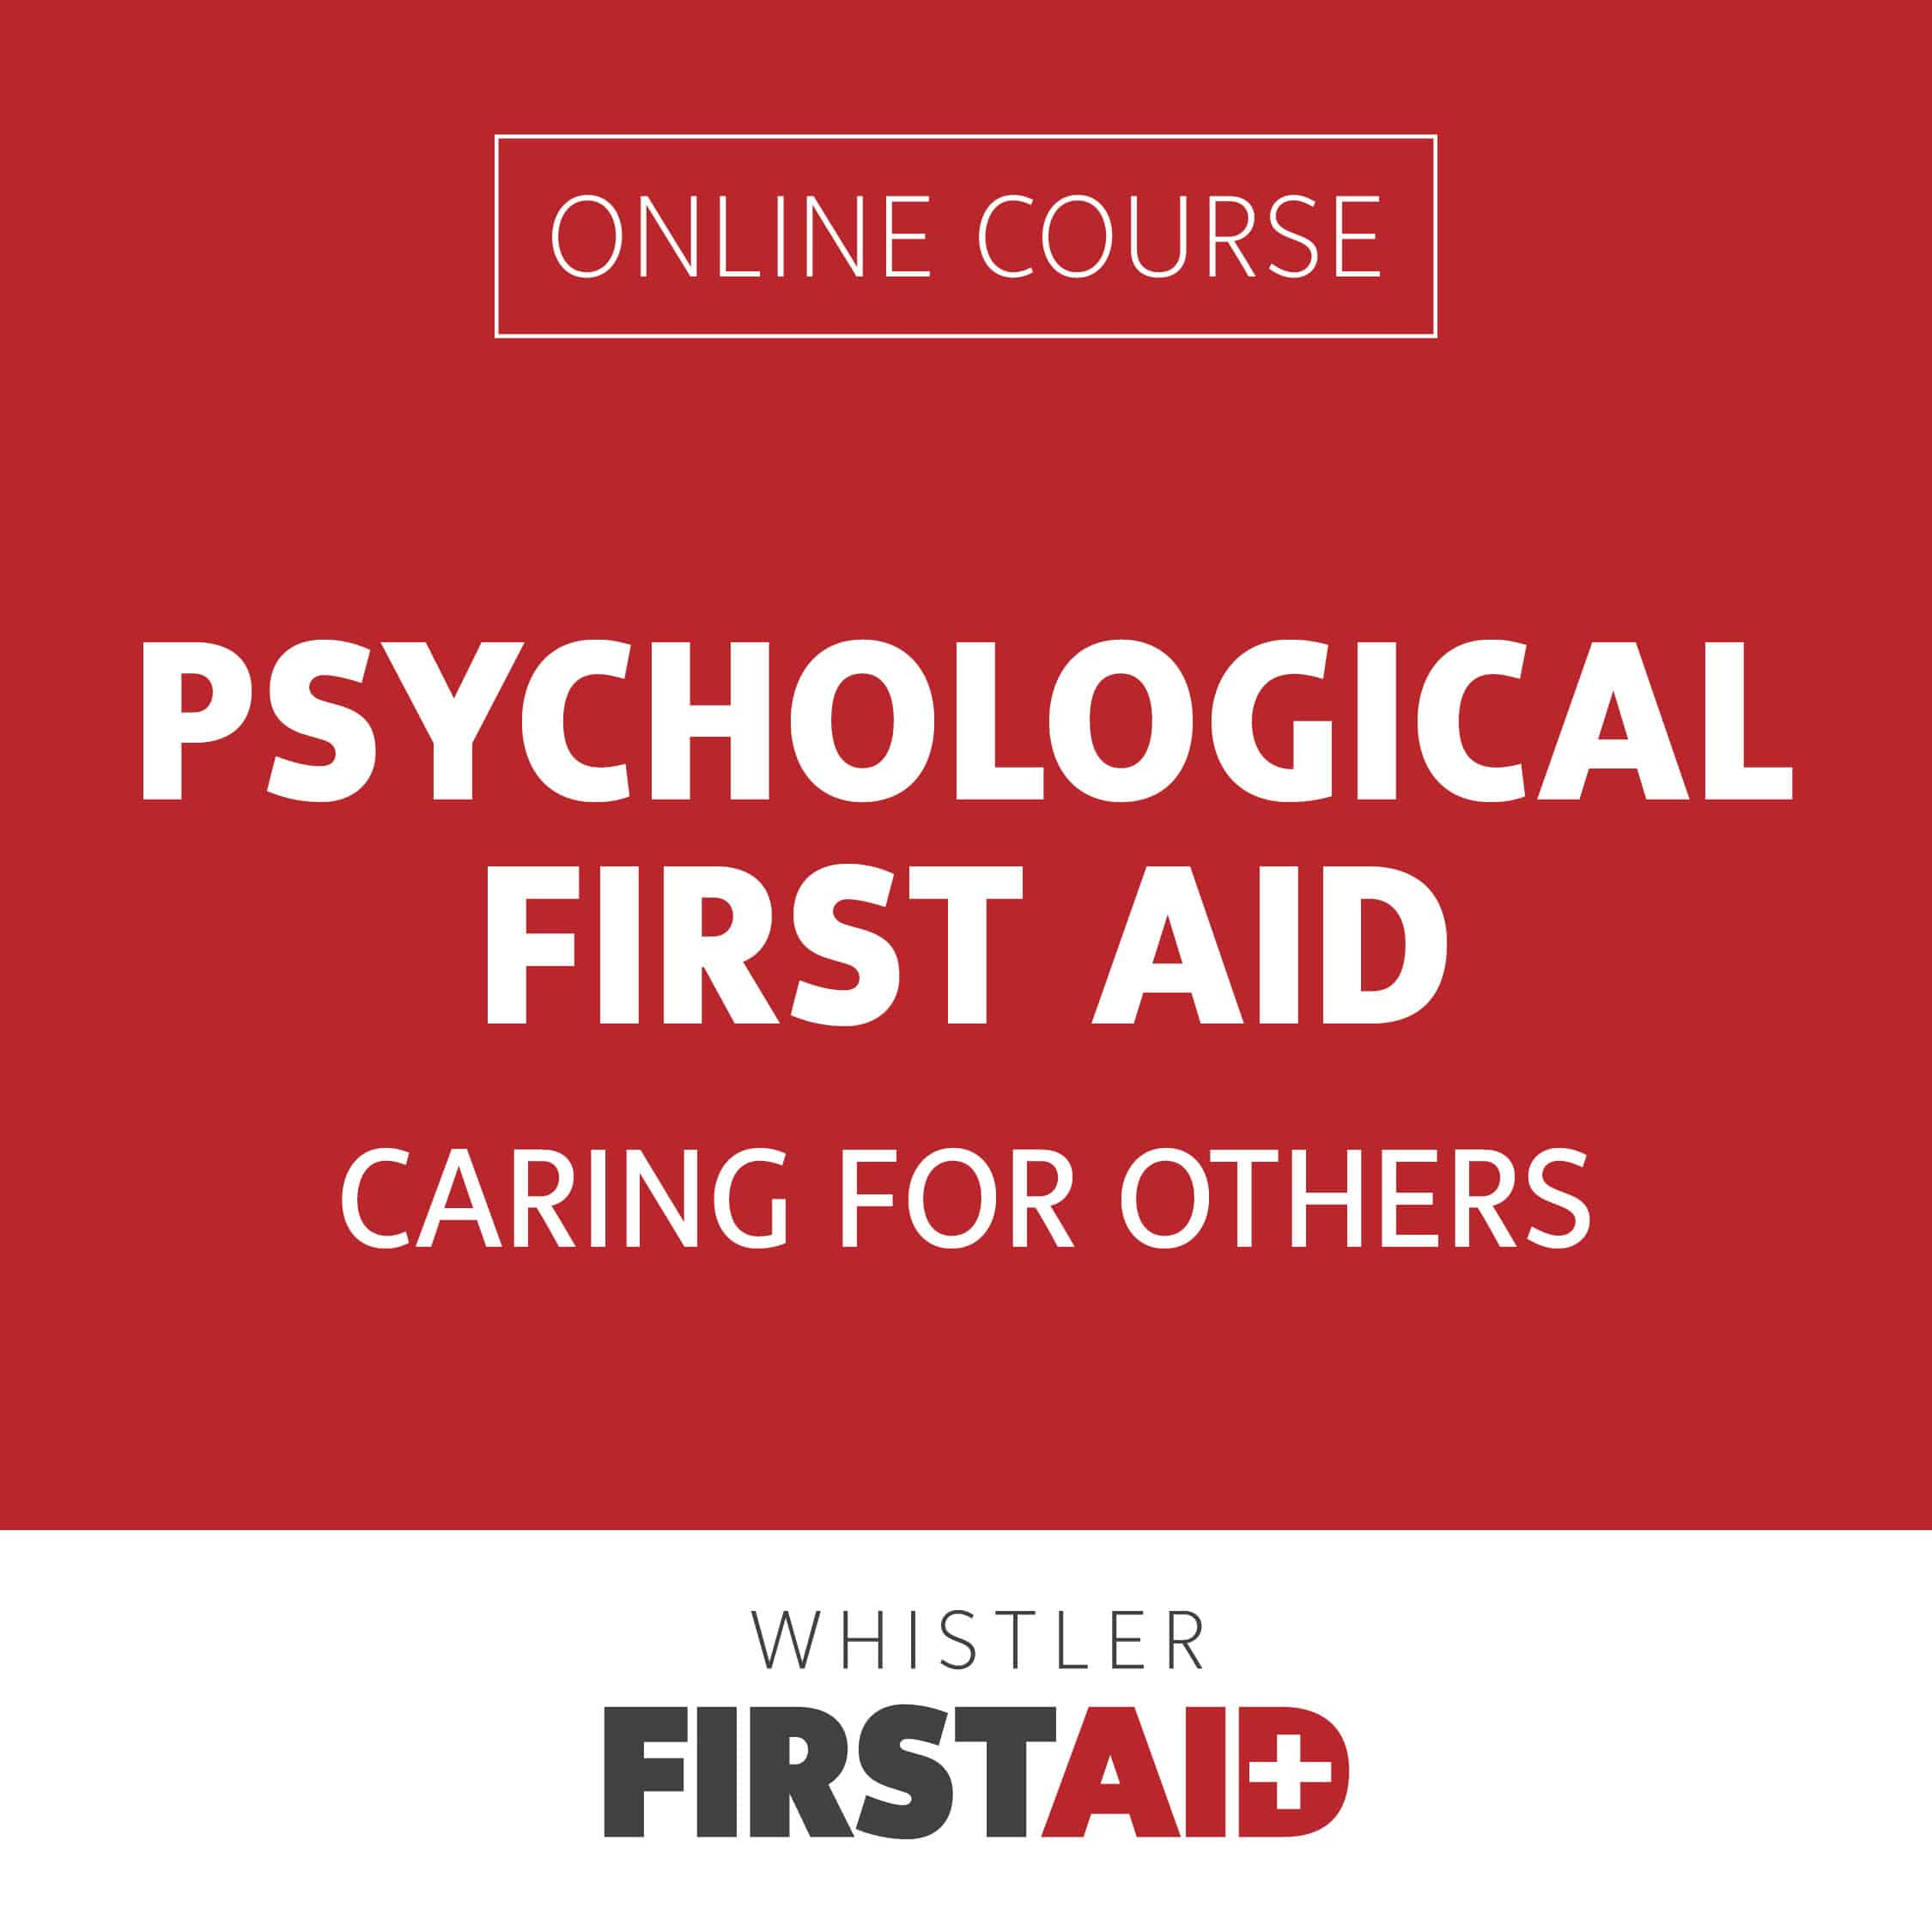 Psychological First Aid: Caring for Others [ONLINE COURSE]